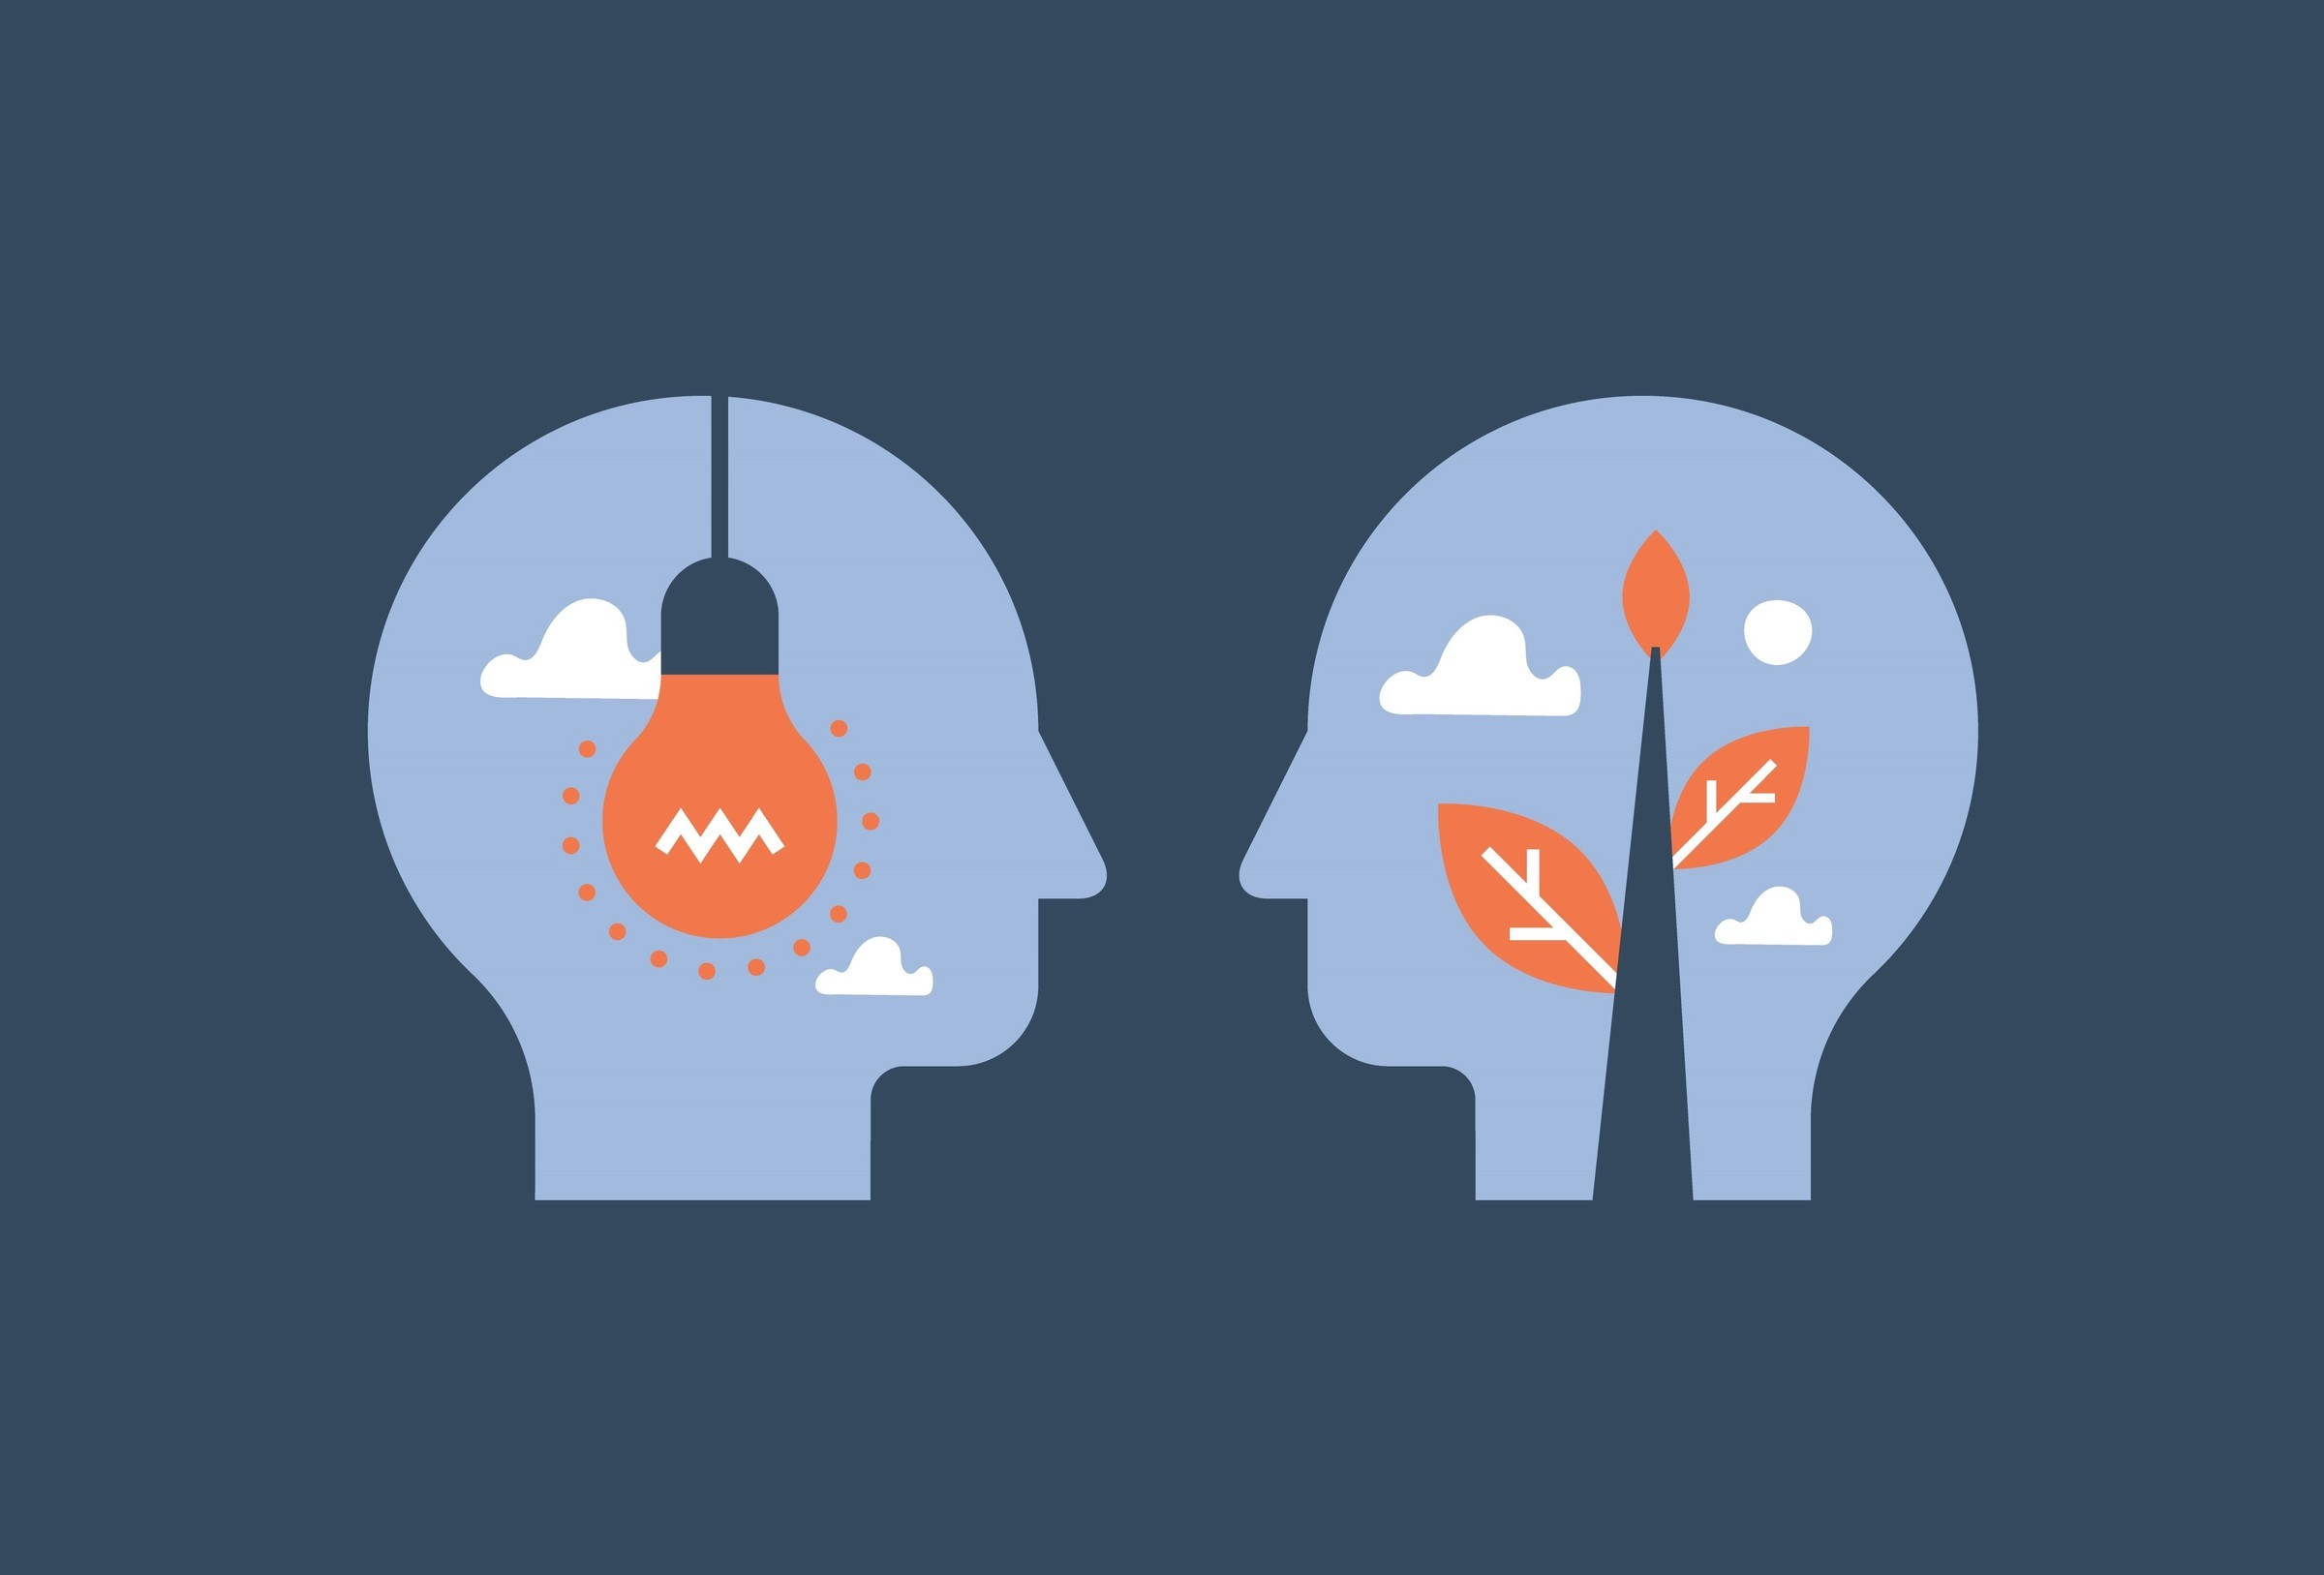 Mentorship concept, guidance and leadership, empathy and communication, face to face heads, negotiation and persuasion, common ground, emotional intelligence, vector flat illustration